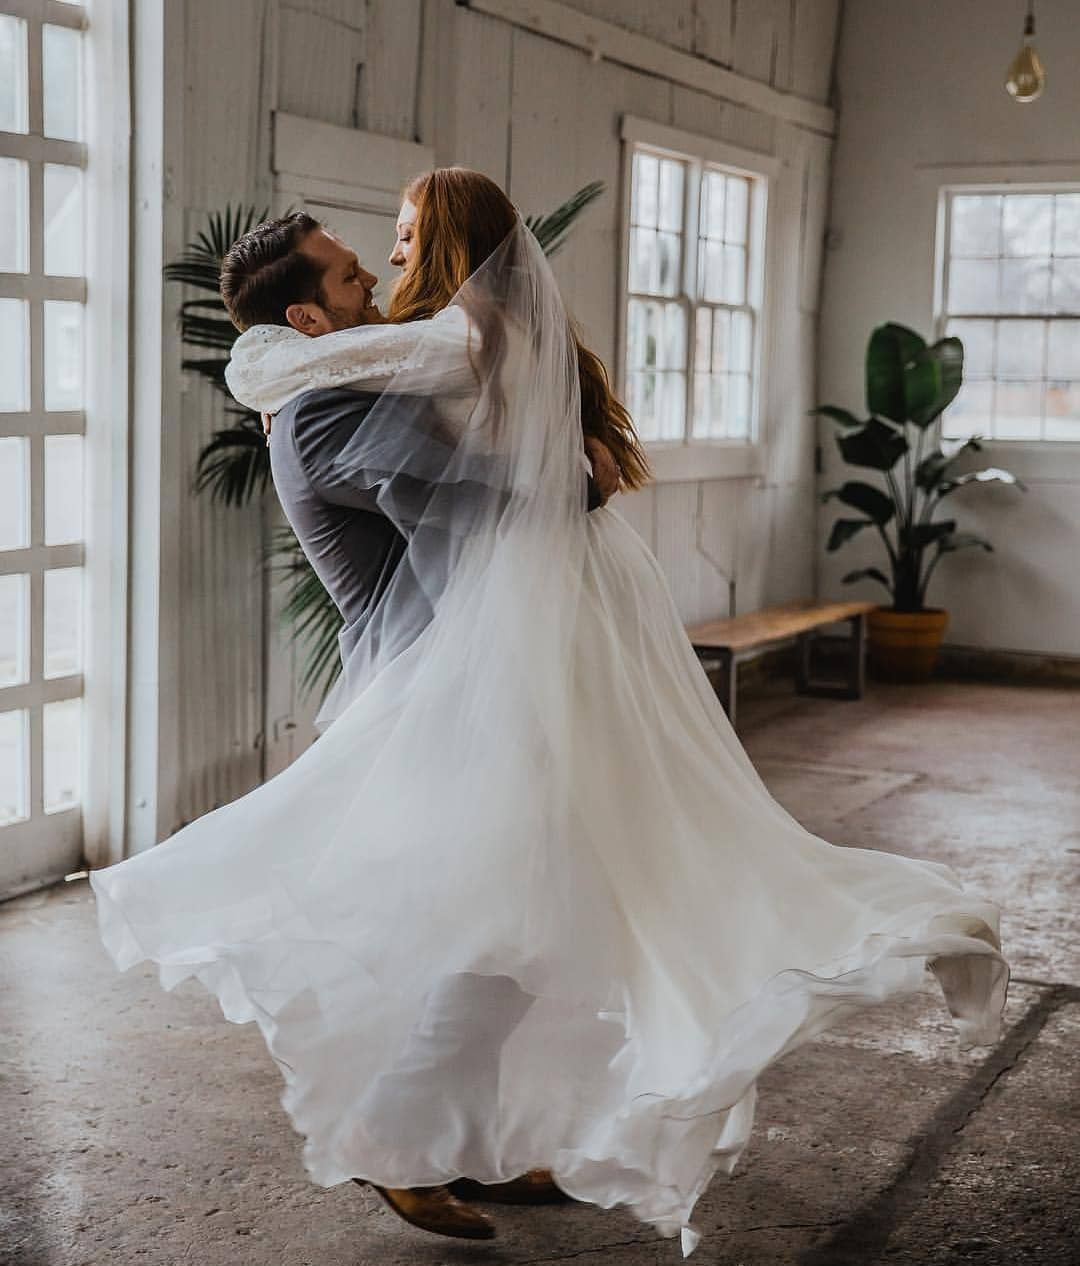 d23e6af5546 Happy Wedding Day to our beautiful bride Aubree in  leannemarshallofficial.  Photo by  amandagracephotography. Modest wedding dress with bishop sleeves